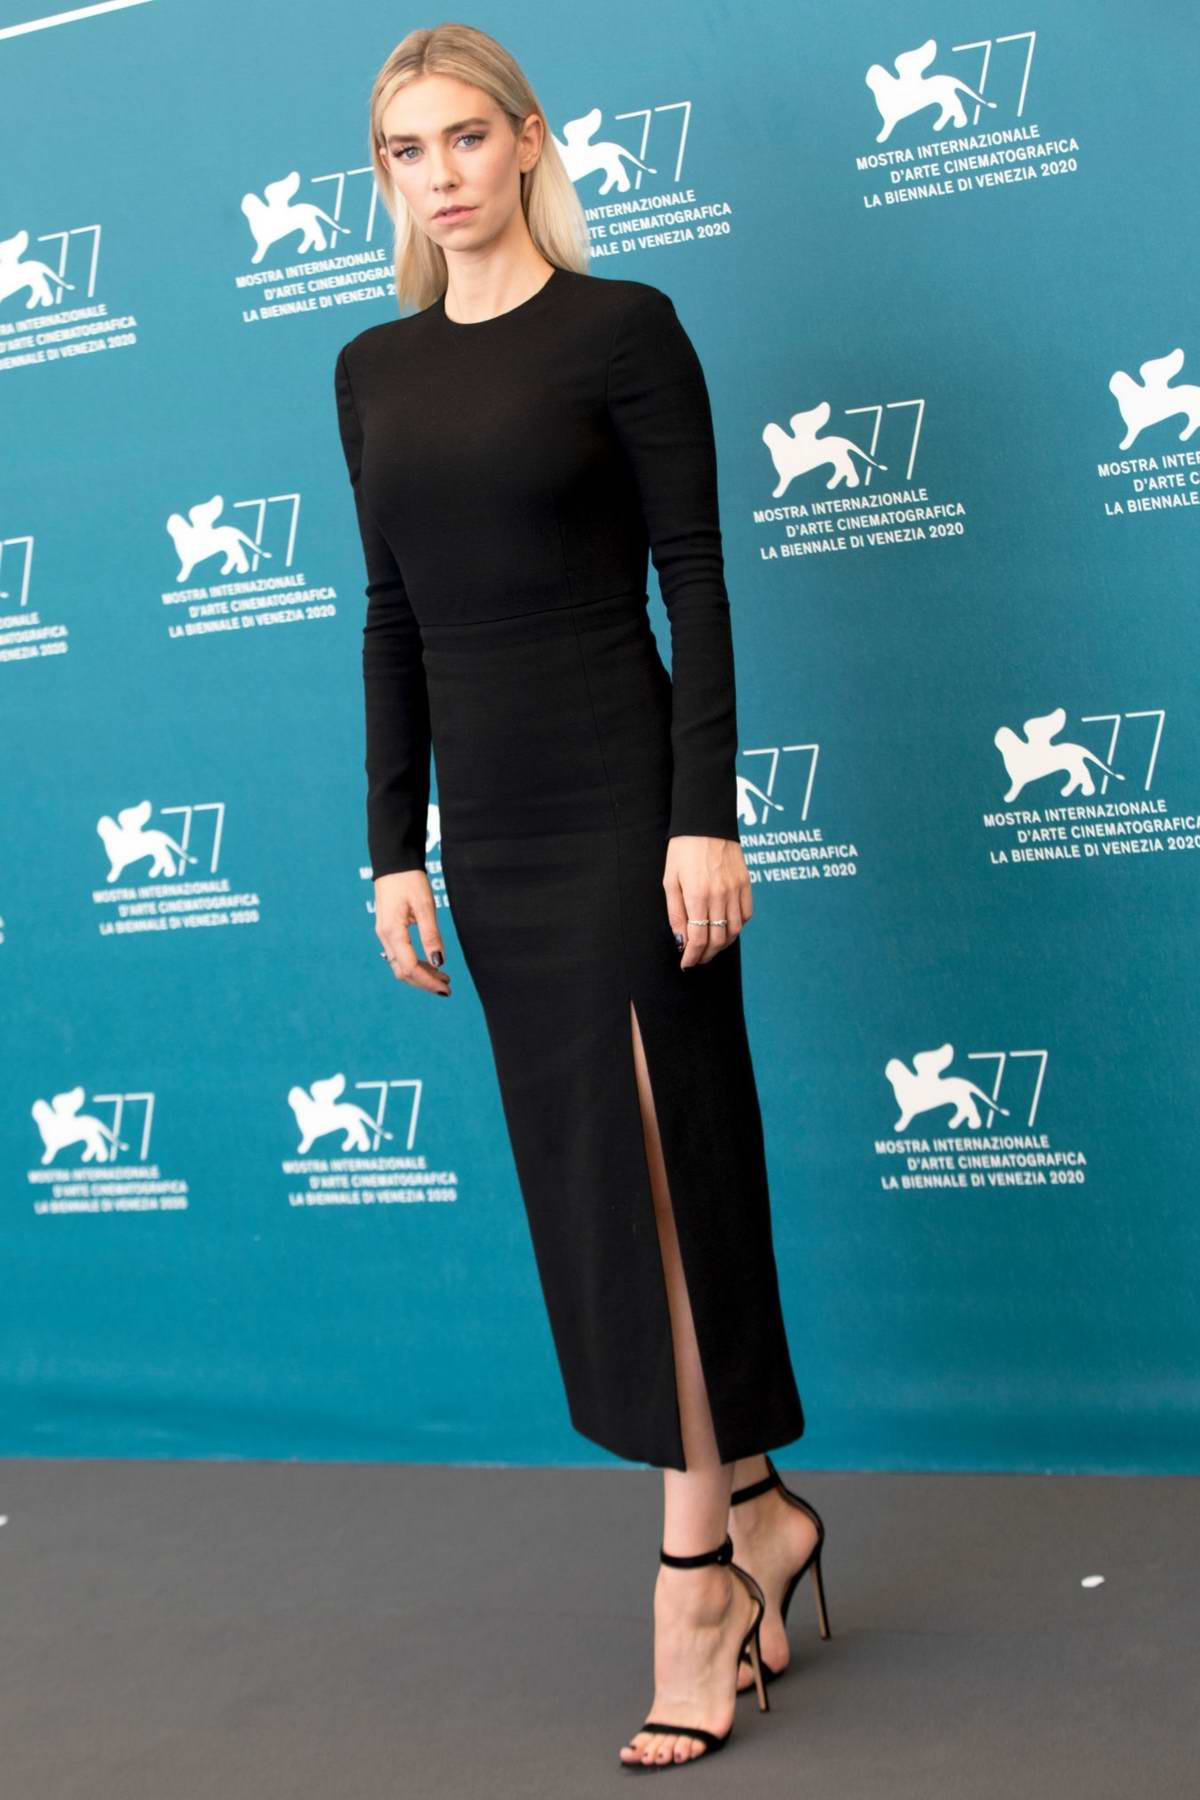 Vanessa Kirby attends 'Pieces of a woman' Photocall during the 77th Venice Film Festival in Venice, Italy